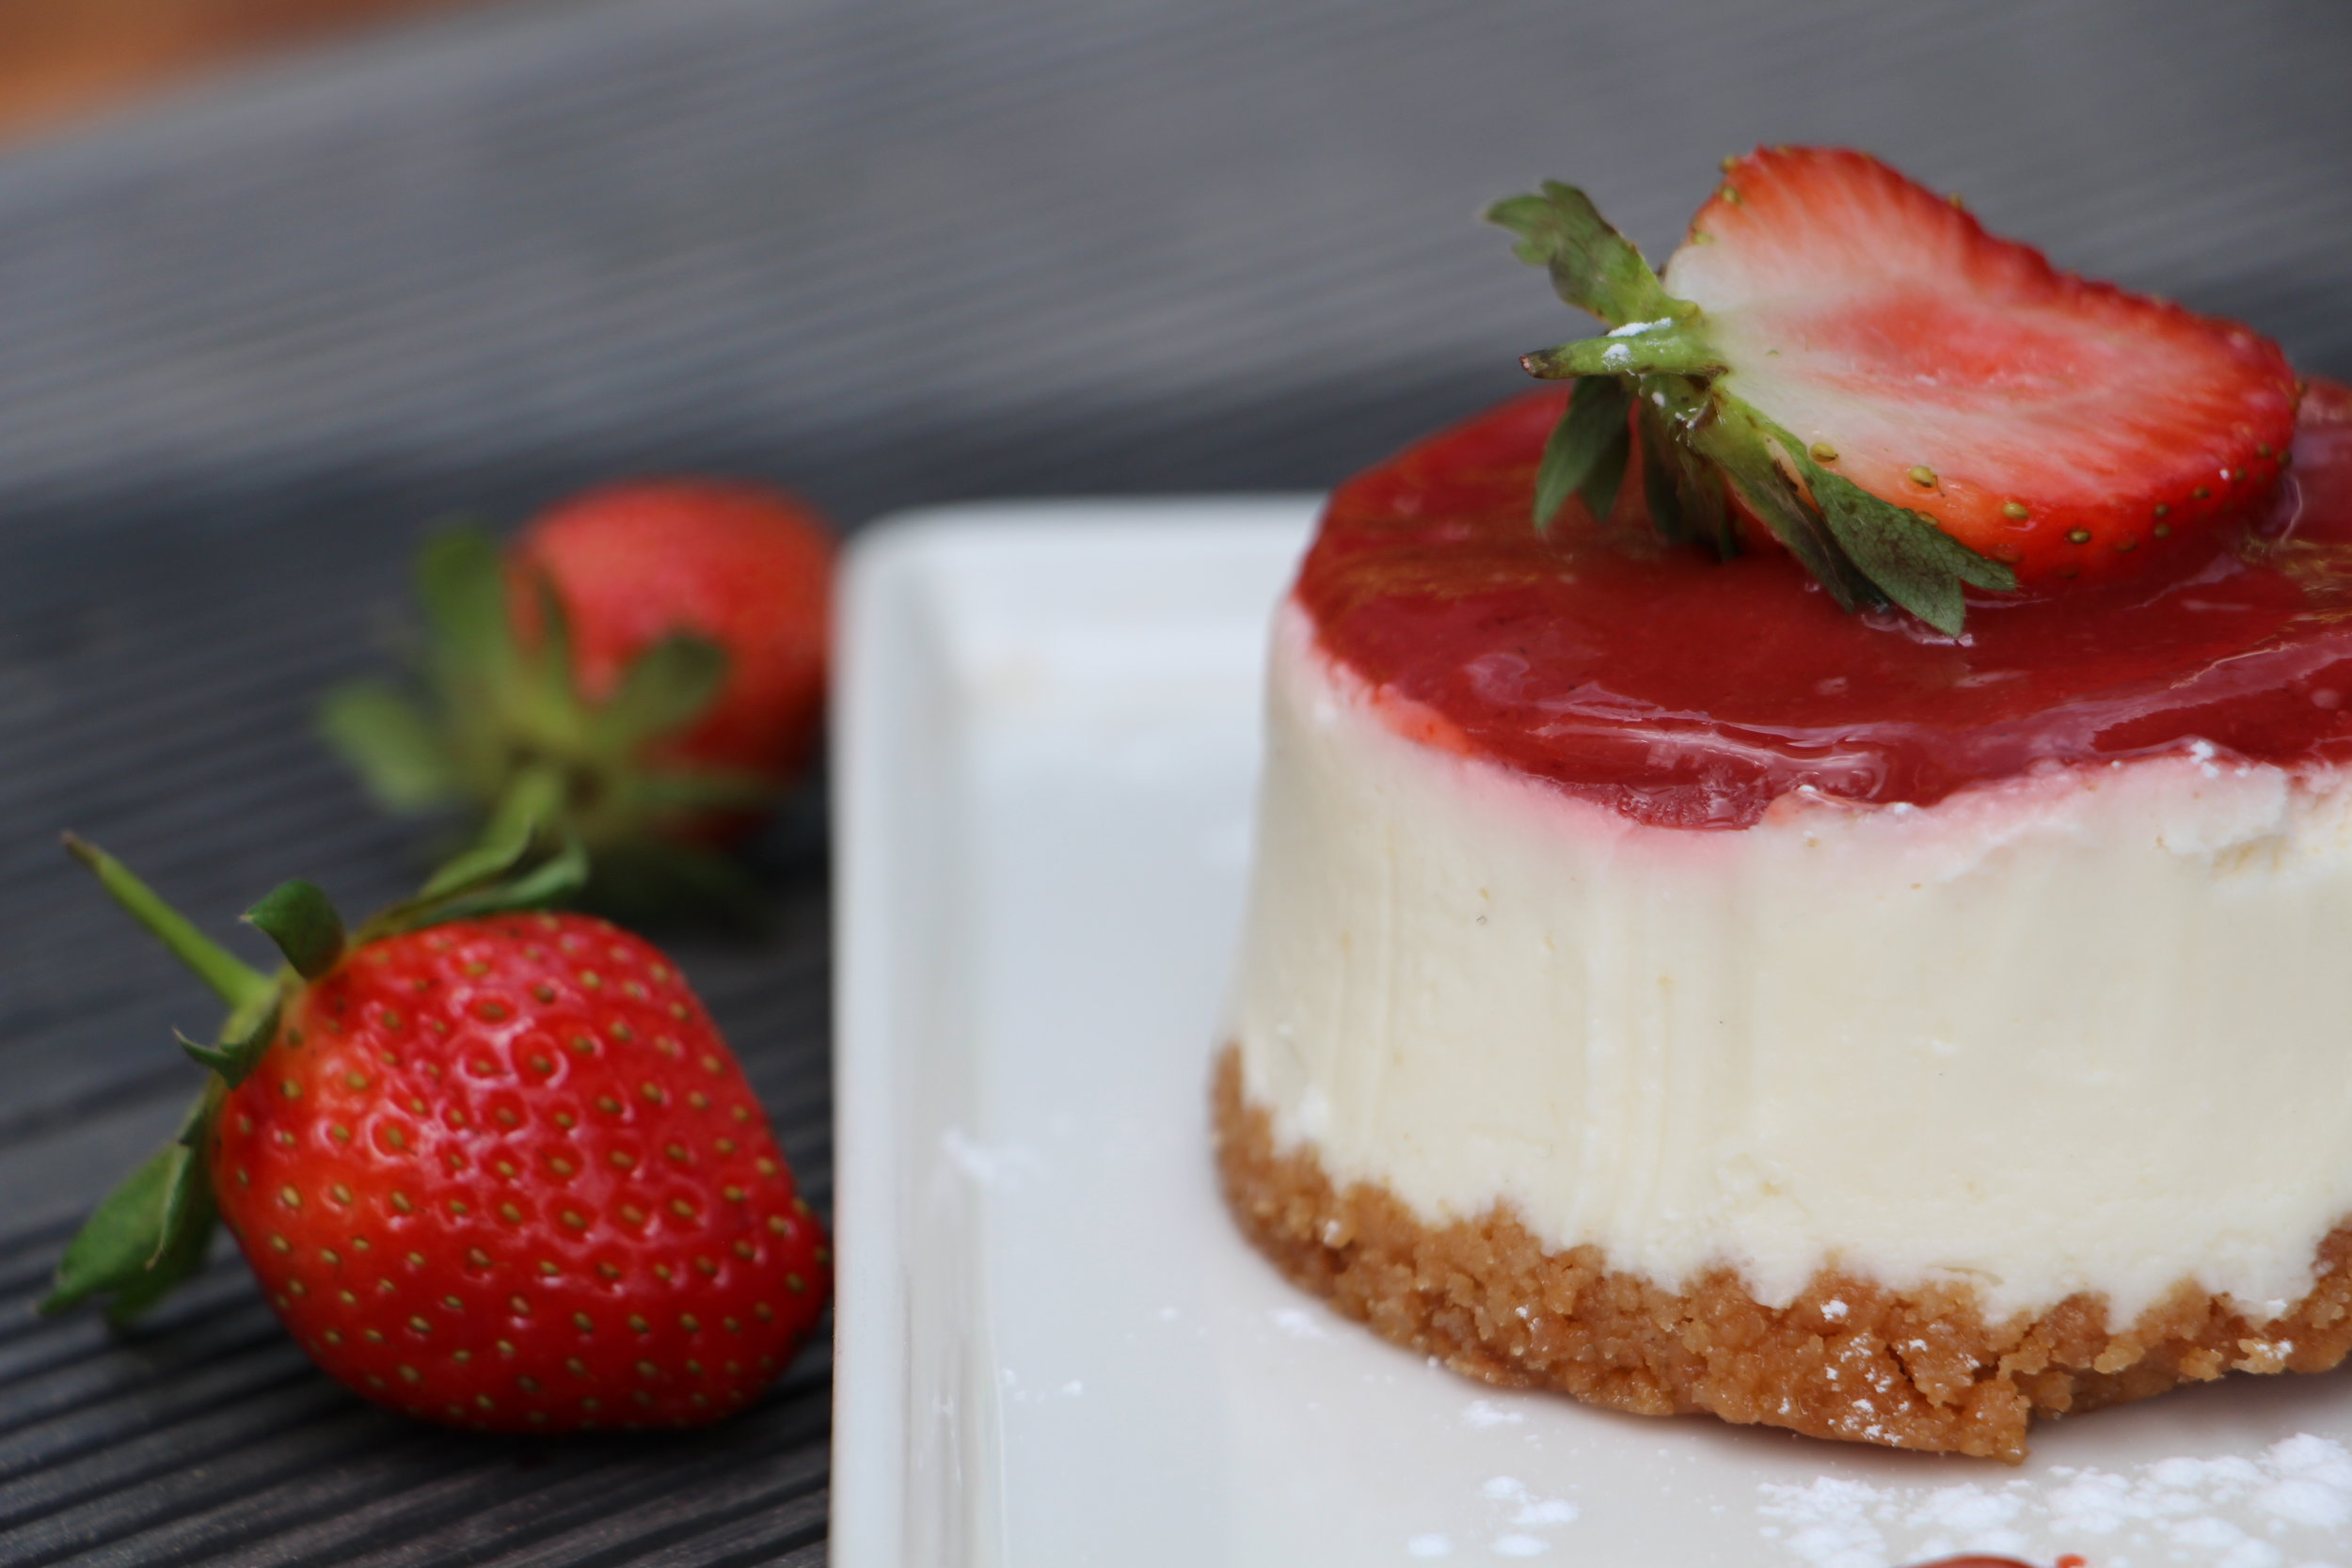 Soft cheesecake coupled with fresh strawberries will leave you fighting with bae for the last bite.